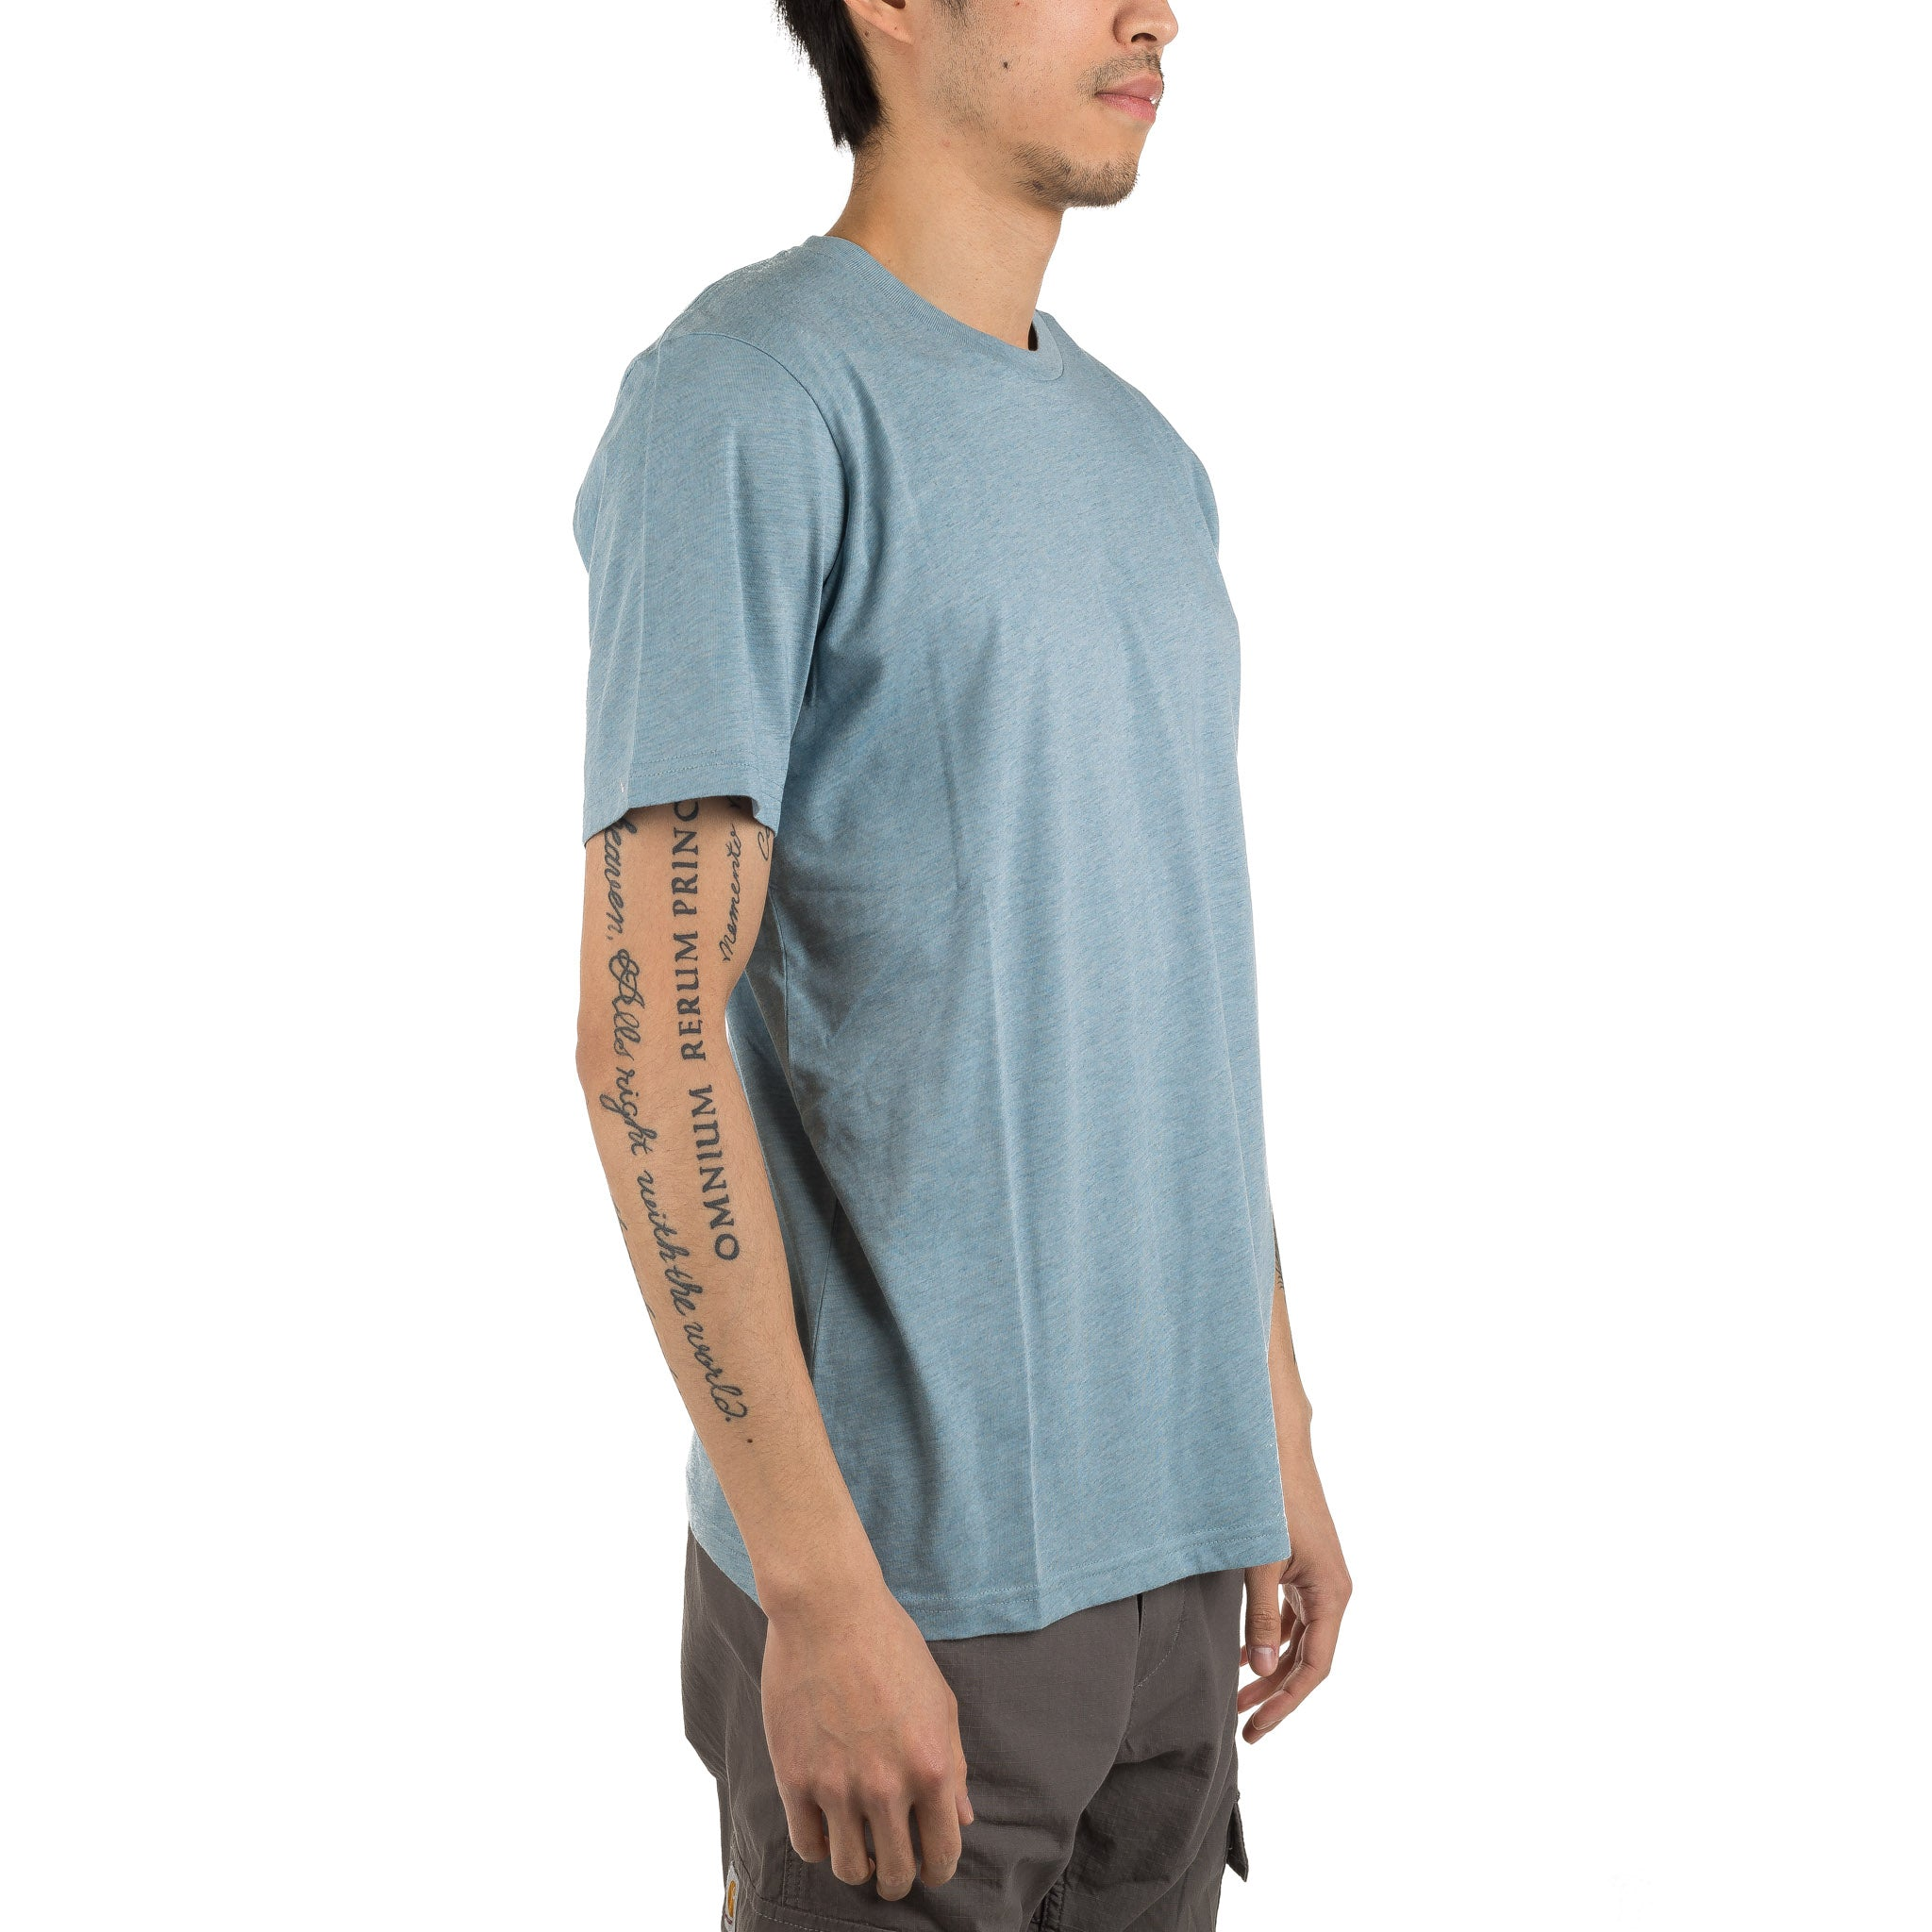 S/S Holbrook LT Tee Blue Heather